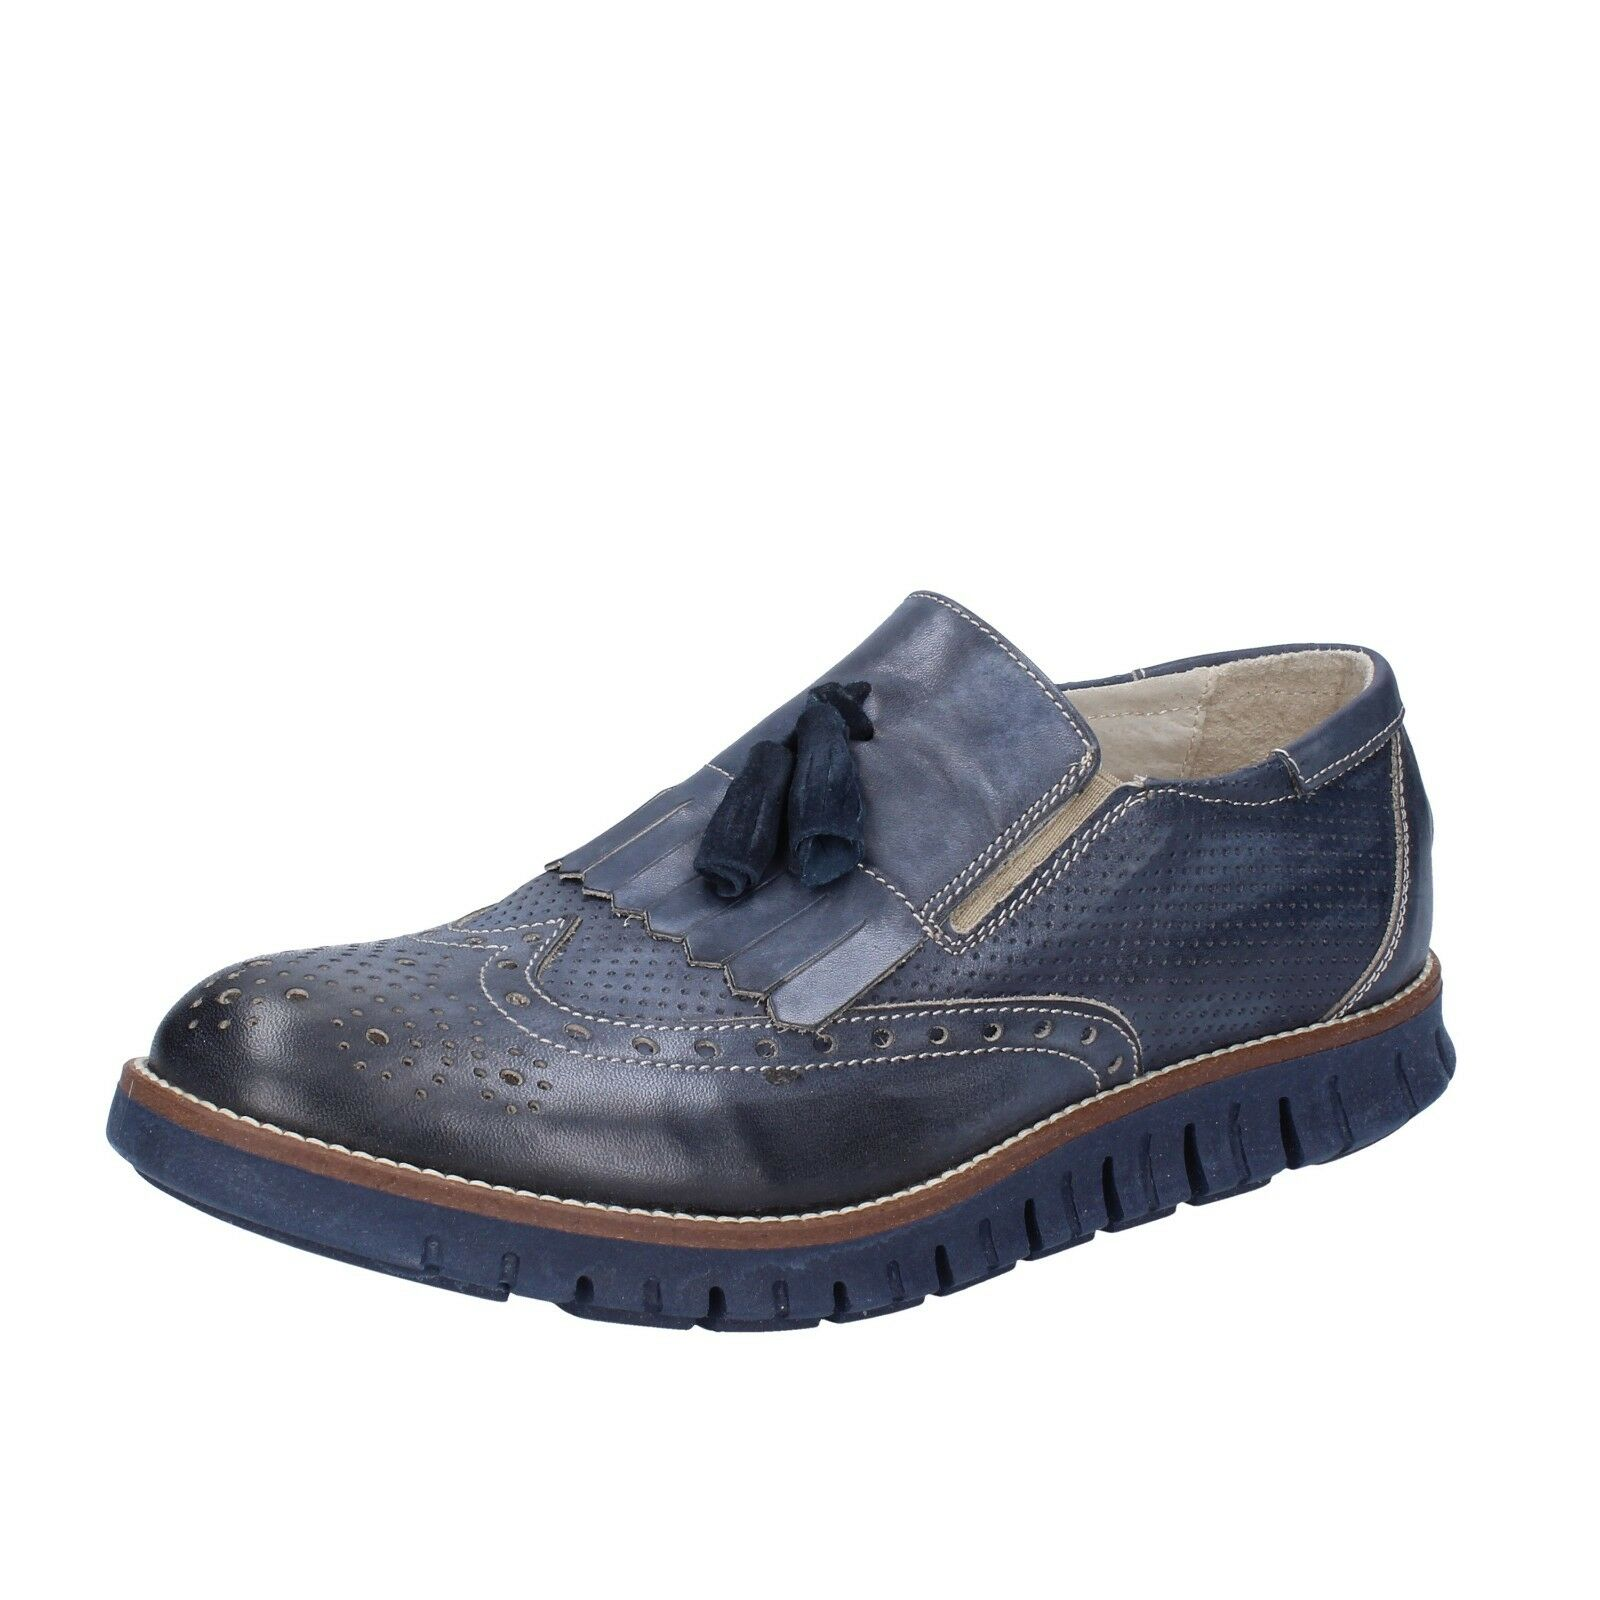 Mens shoes OSSIANI 7 () loafers bluee leather BT866-41